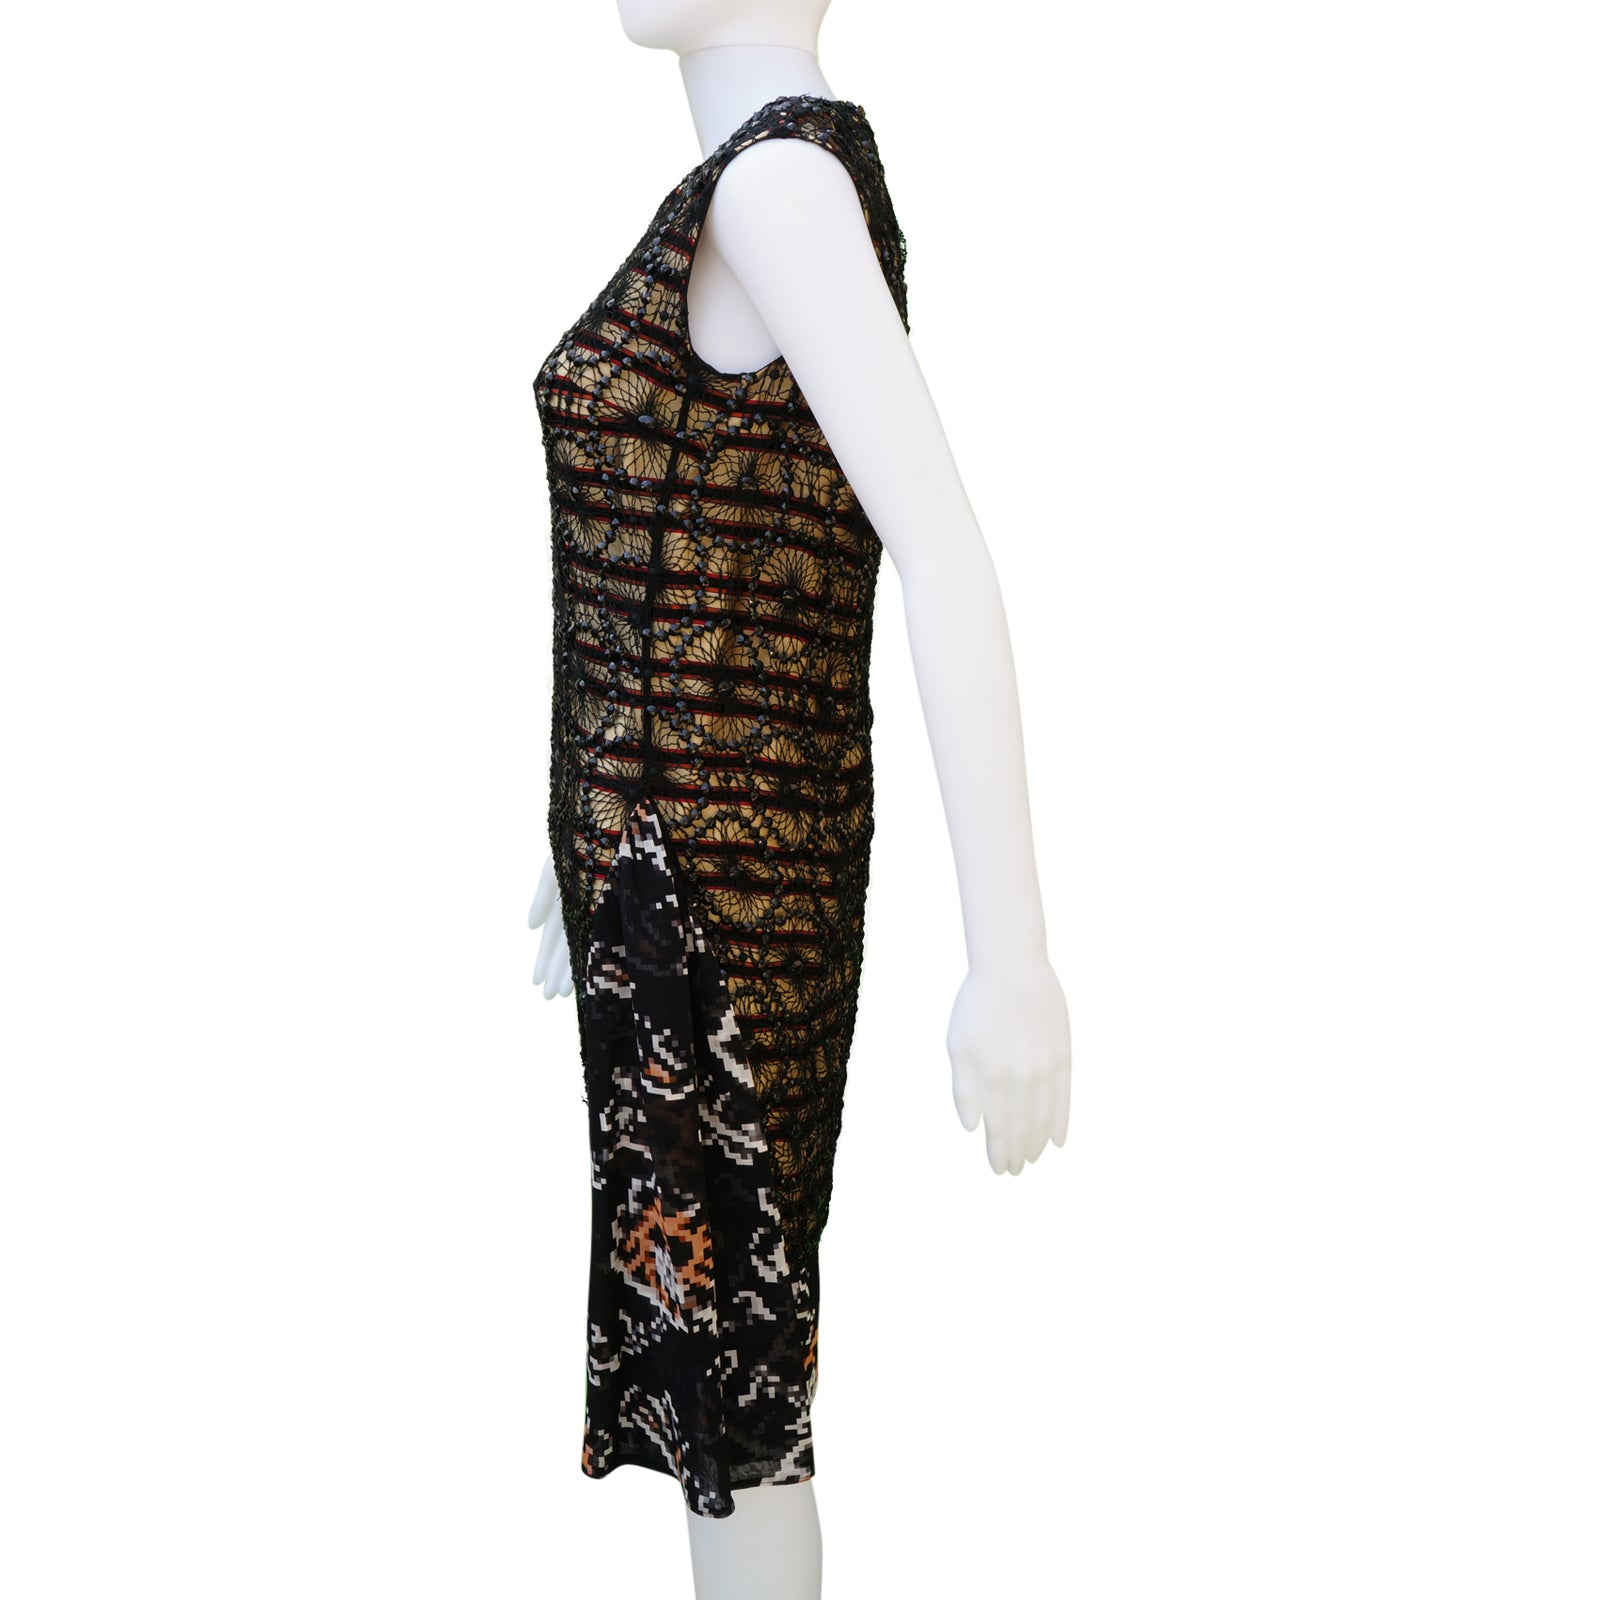 0102fc819d ... DRIES VAN NOTEN SEQUIN OVERLAY DRESS Shop online the best value on  authentic designer used preowned ...